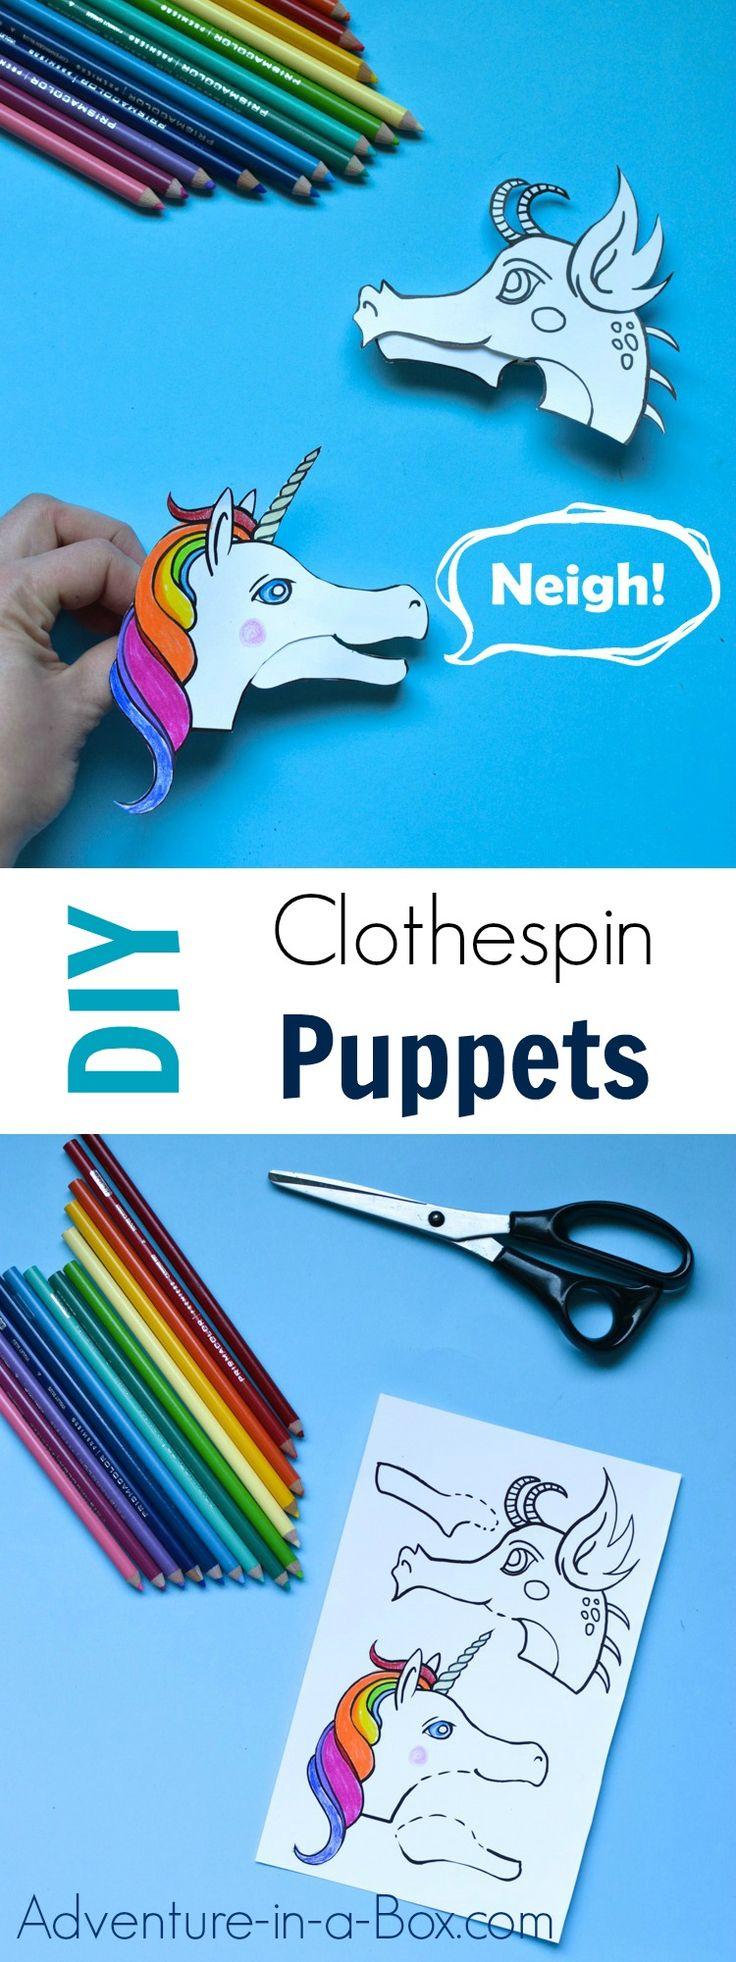 2418 best wee art images on Pinterest | Crafts, Crafts for kids and ...